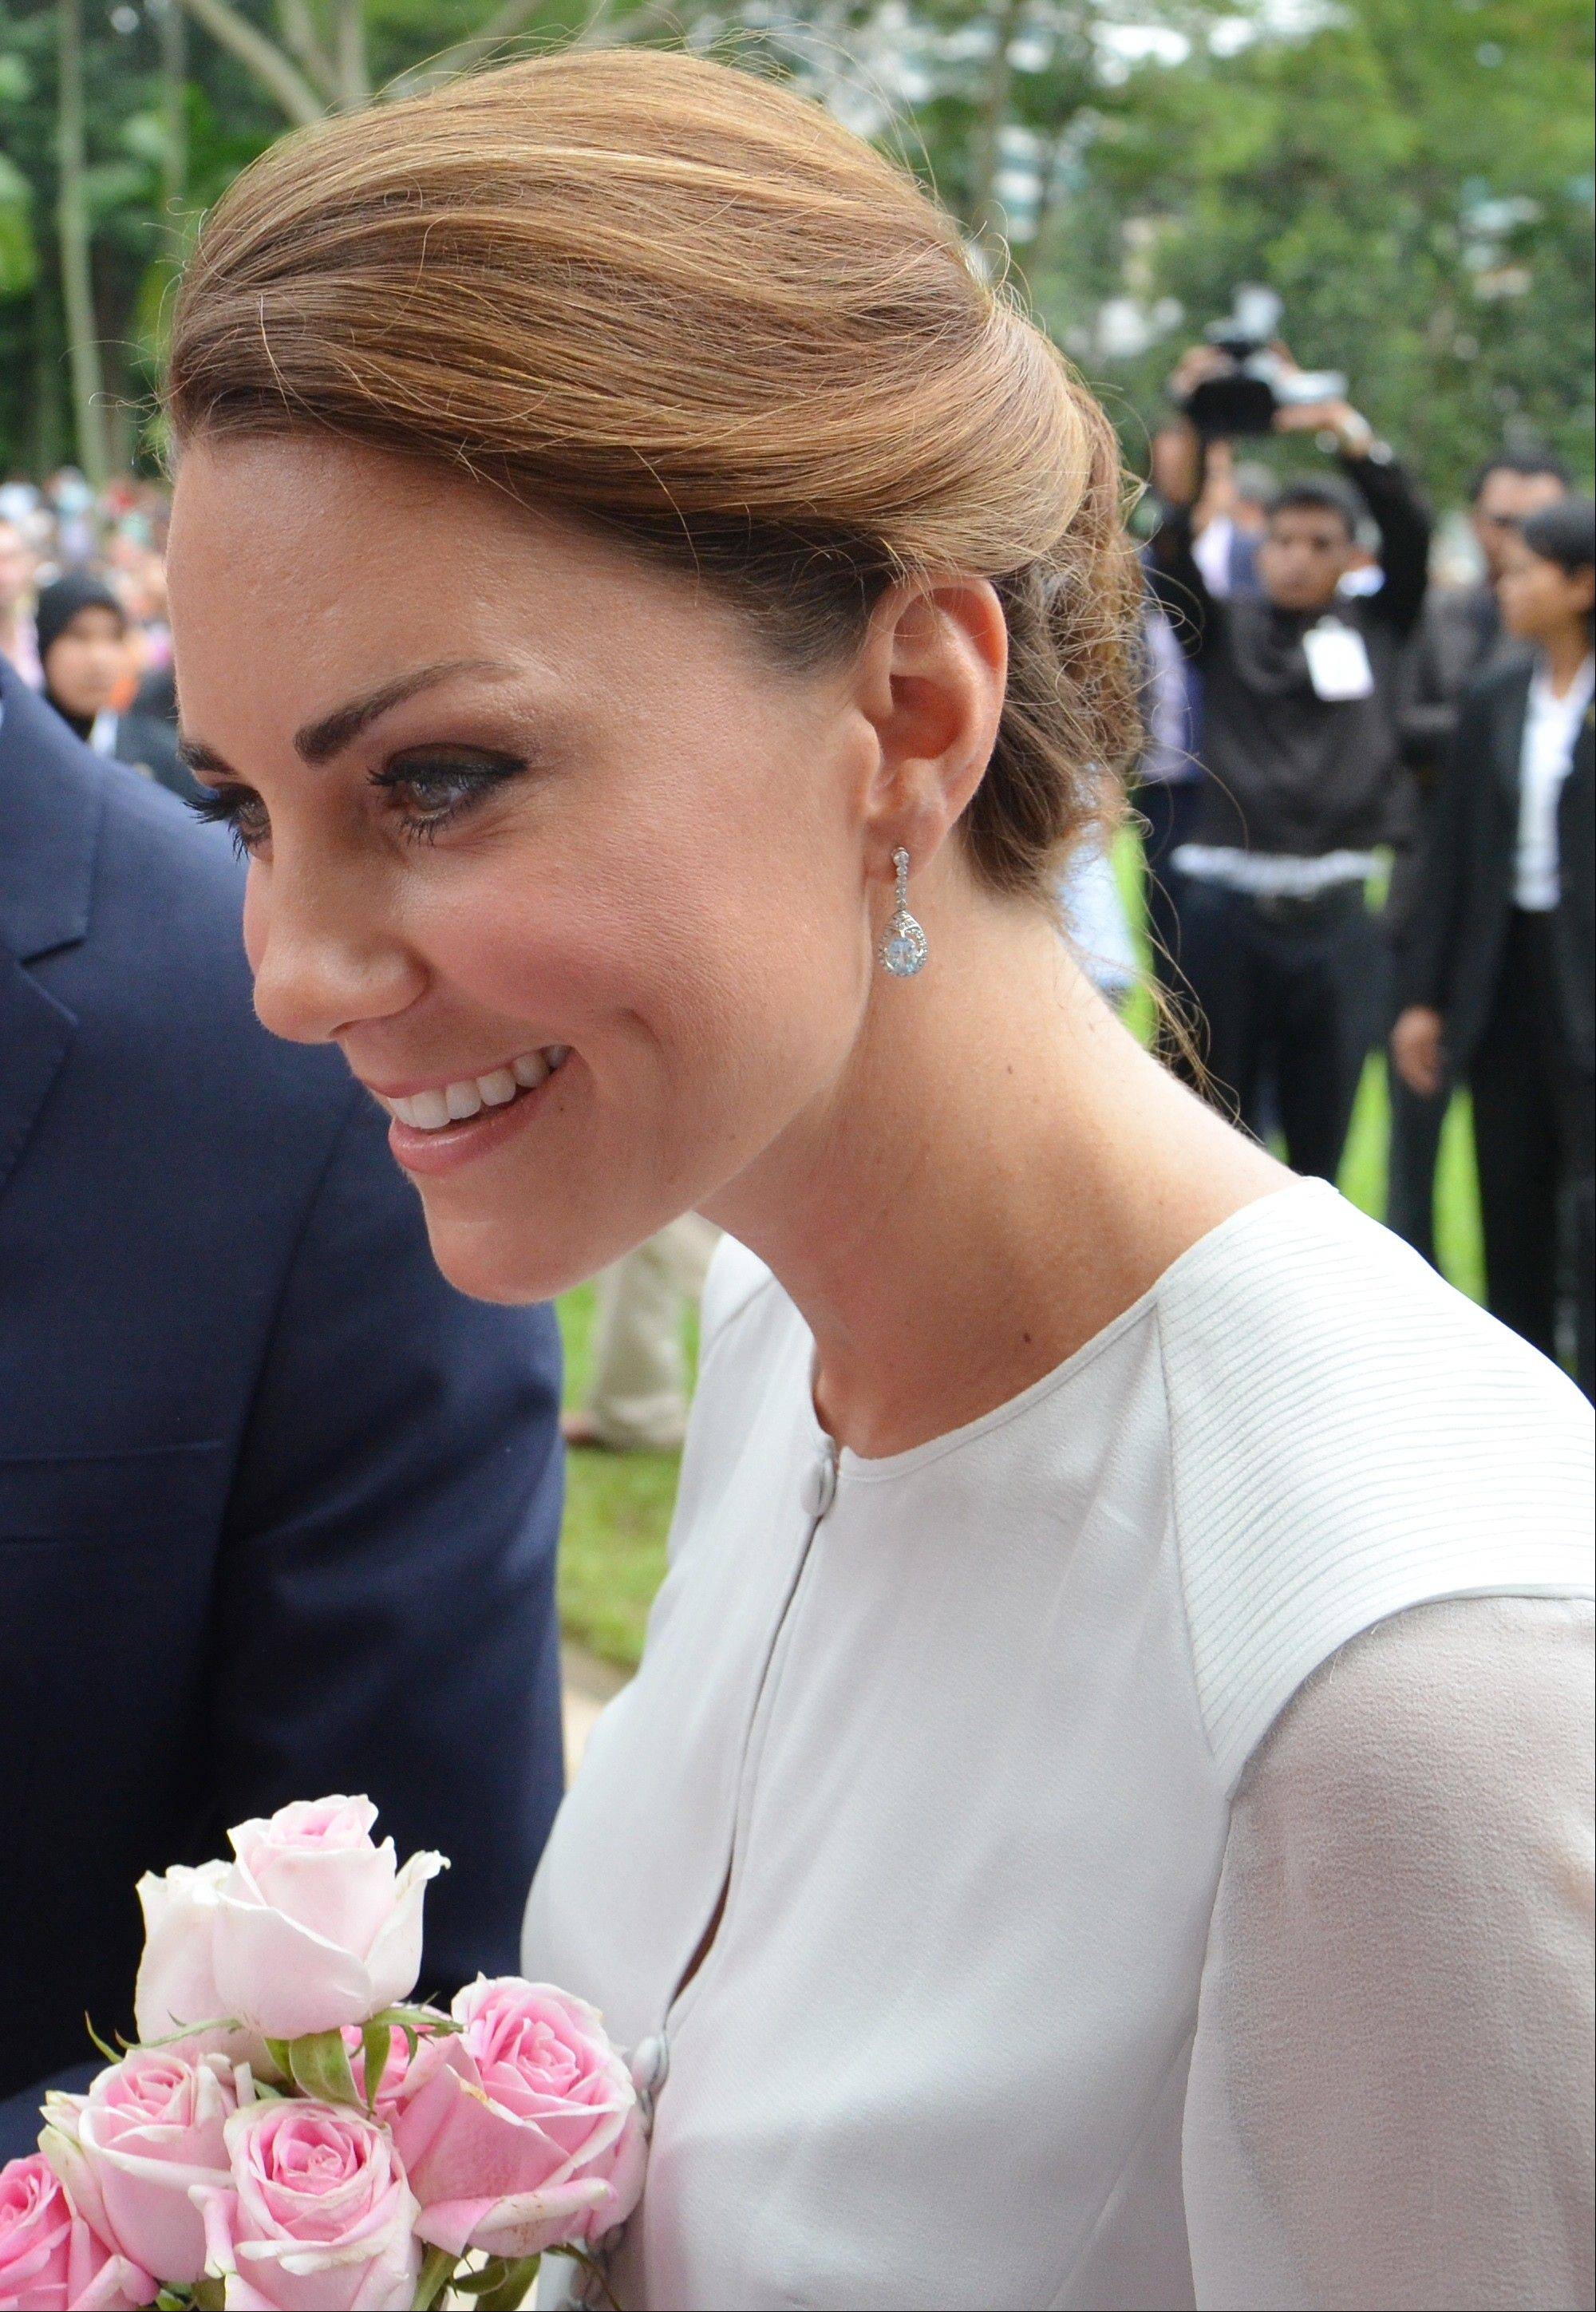 Britain's Kate, the Duchess of Cambridge talks to people in the crowd during a walk through a central city park in Kuala Lumpur, Malaysia, Friday, Sept. 14, 2012. Prince William and Kate nine are in Malaysia for a three-day visit as part of a tour to mark Queen Elizabeth II's Diamond Jubilee.